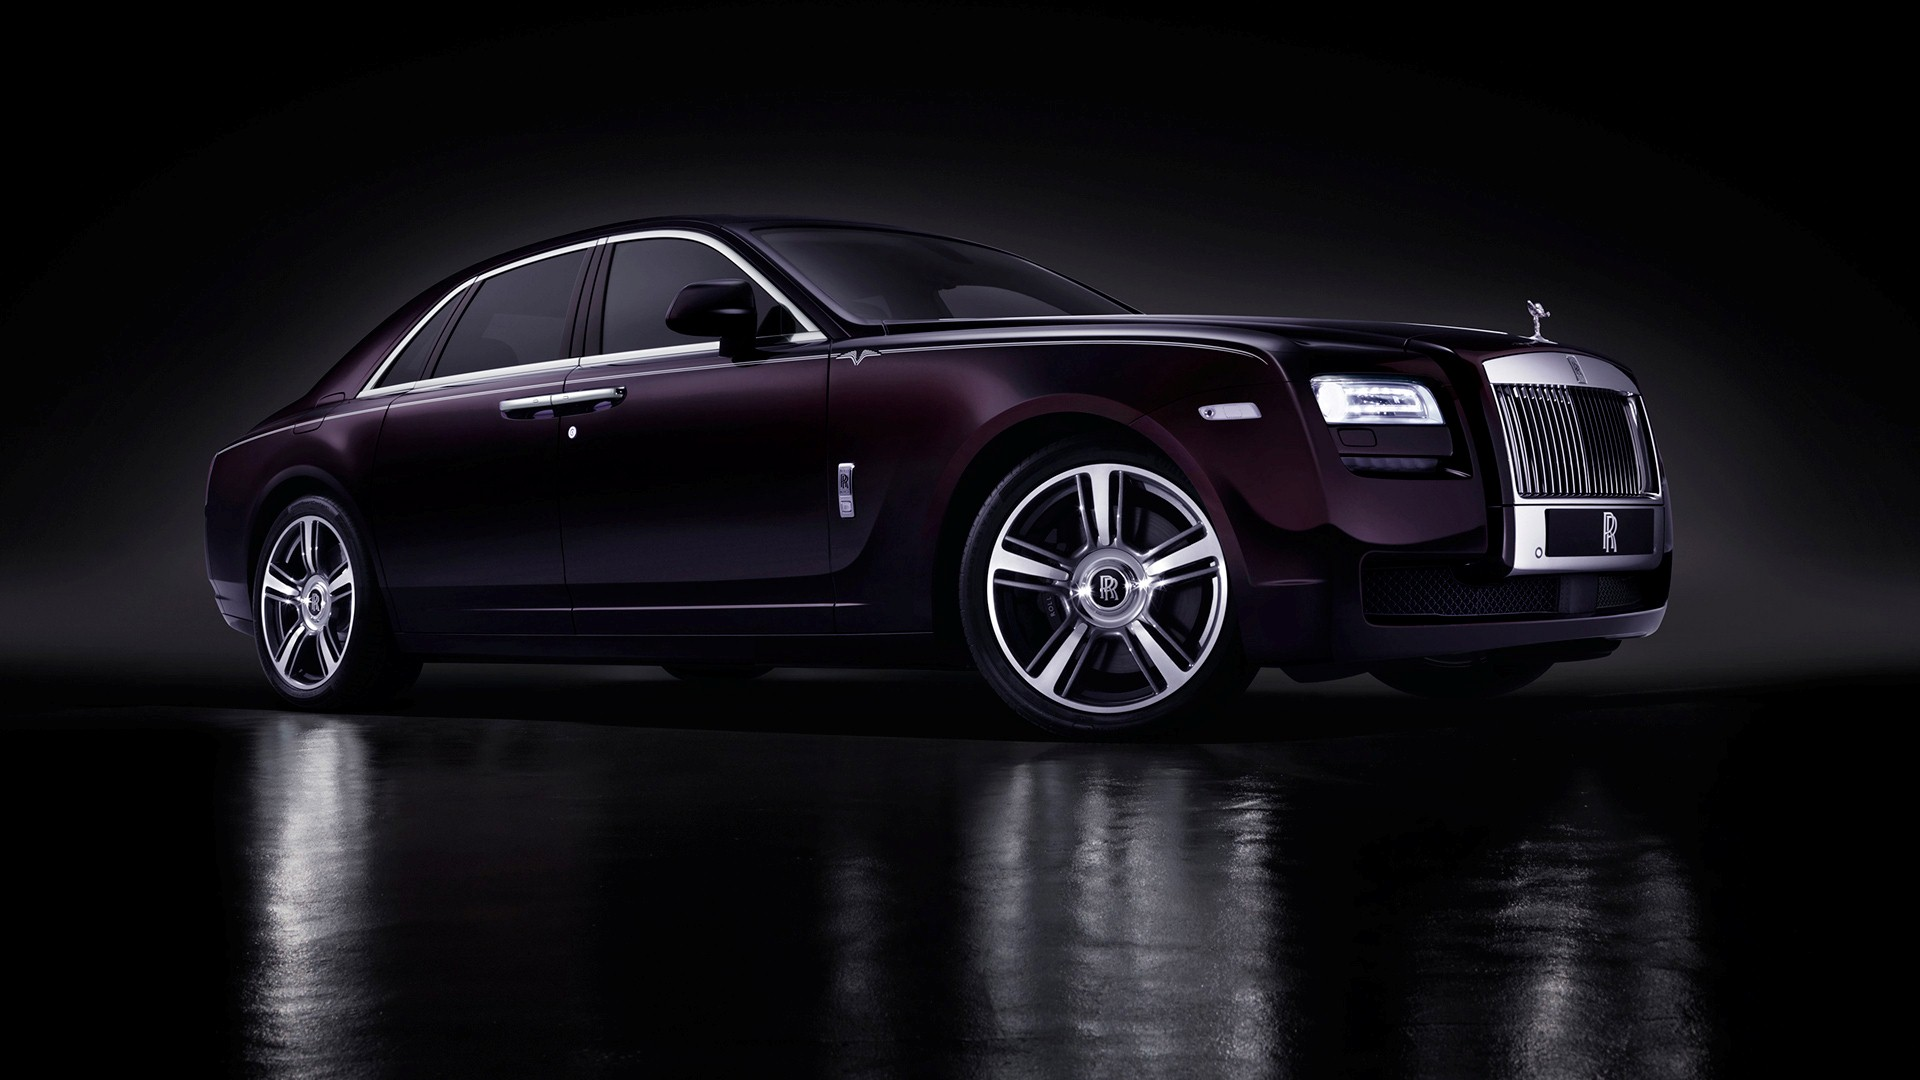 Collection of Rolls Royce Wallpaper on HDWallpapers 1920x1080